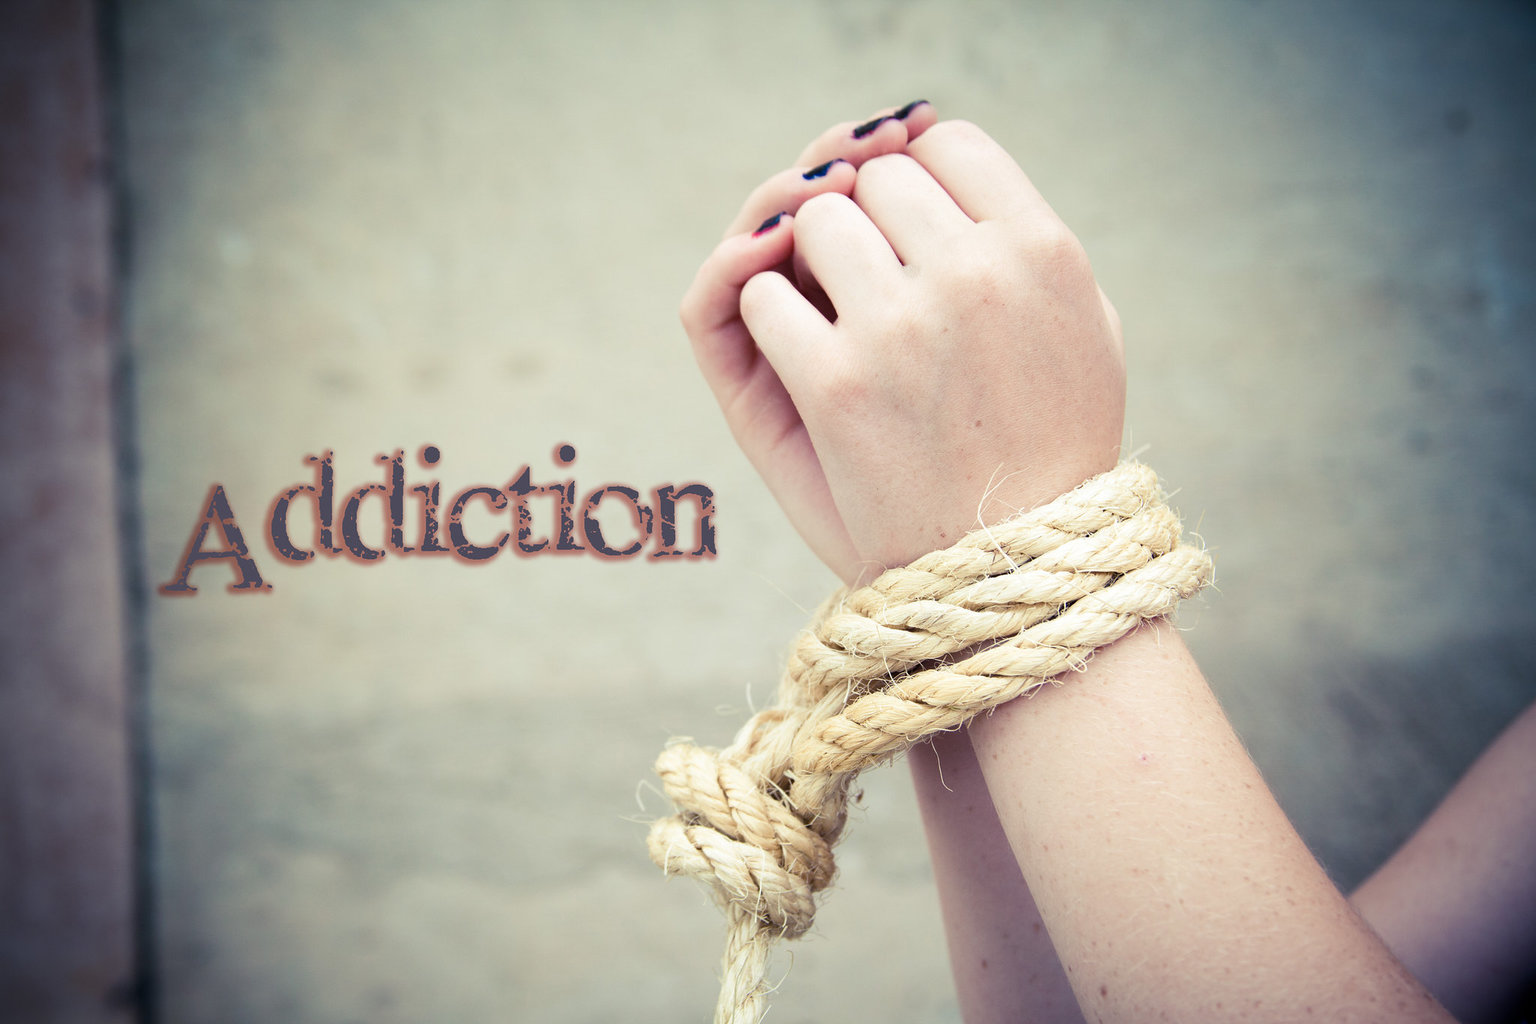 addiction, roped hands